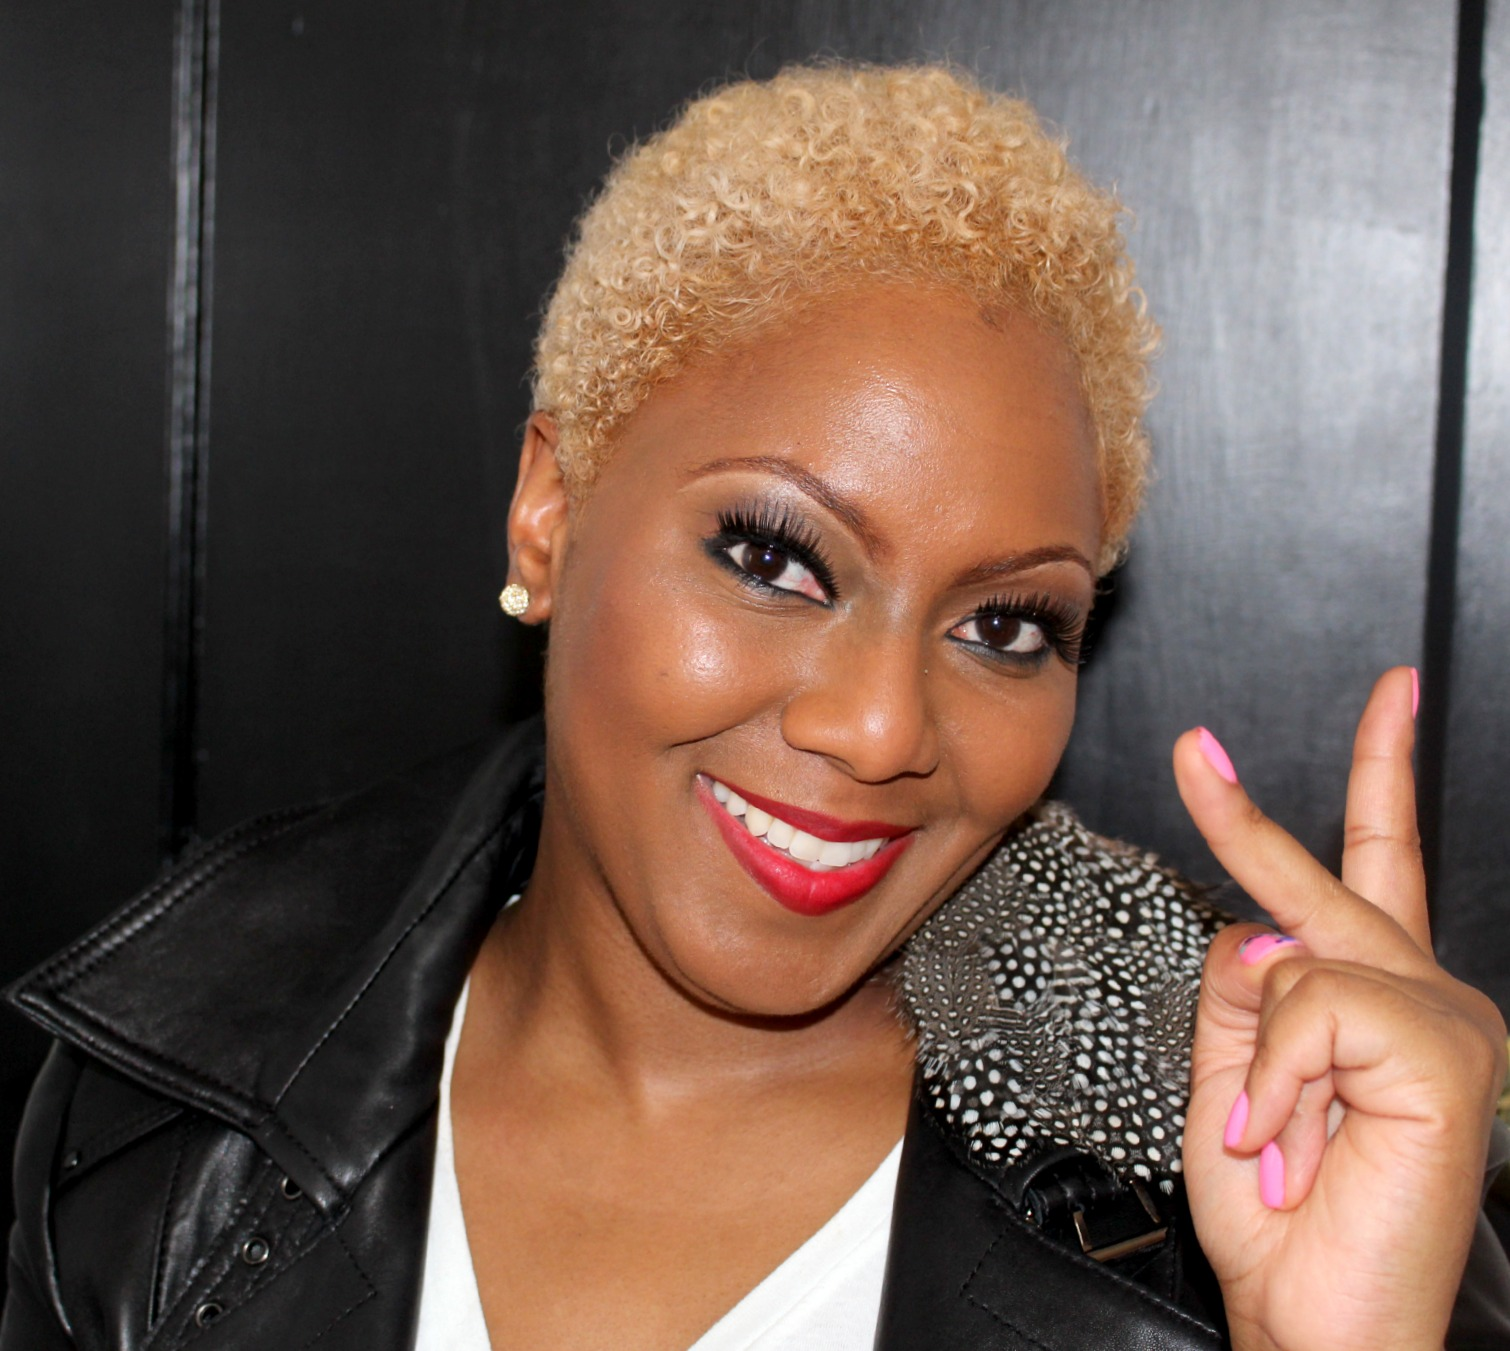 chrisette michele hair styles chrisette michele hairstyles 2014 www pixshark 9772